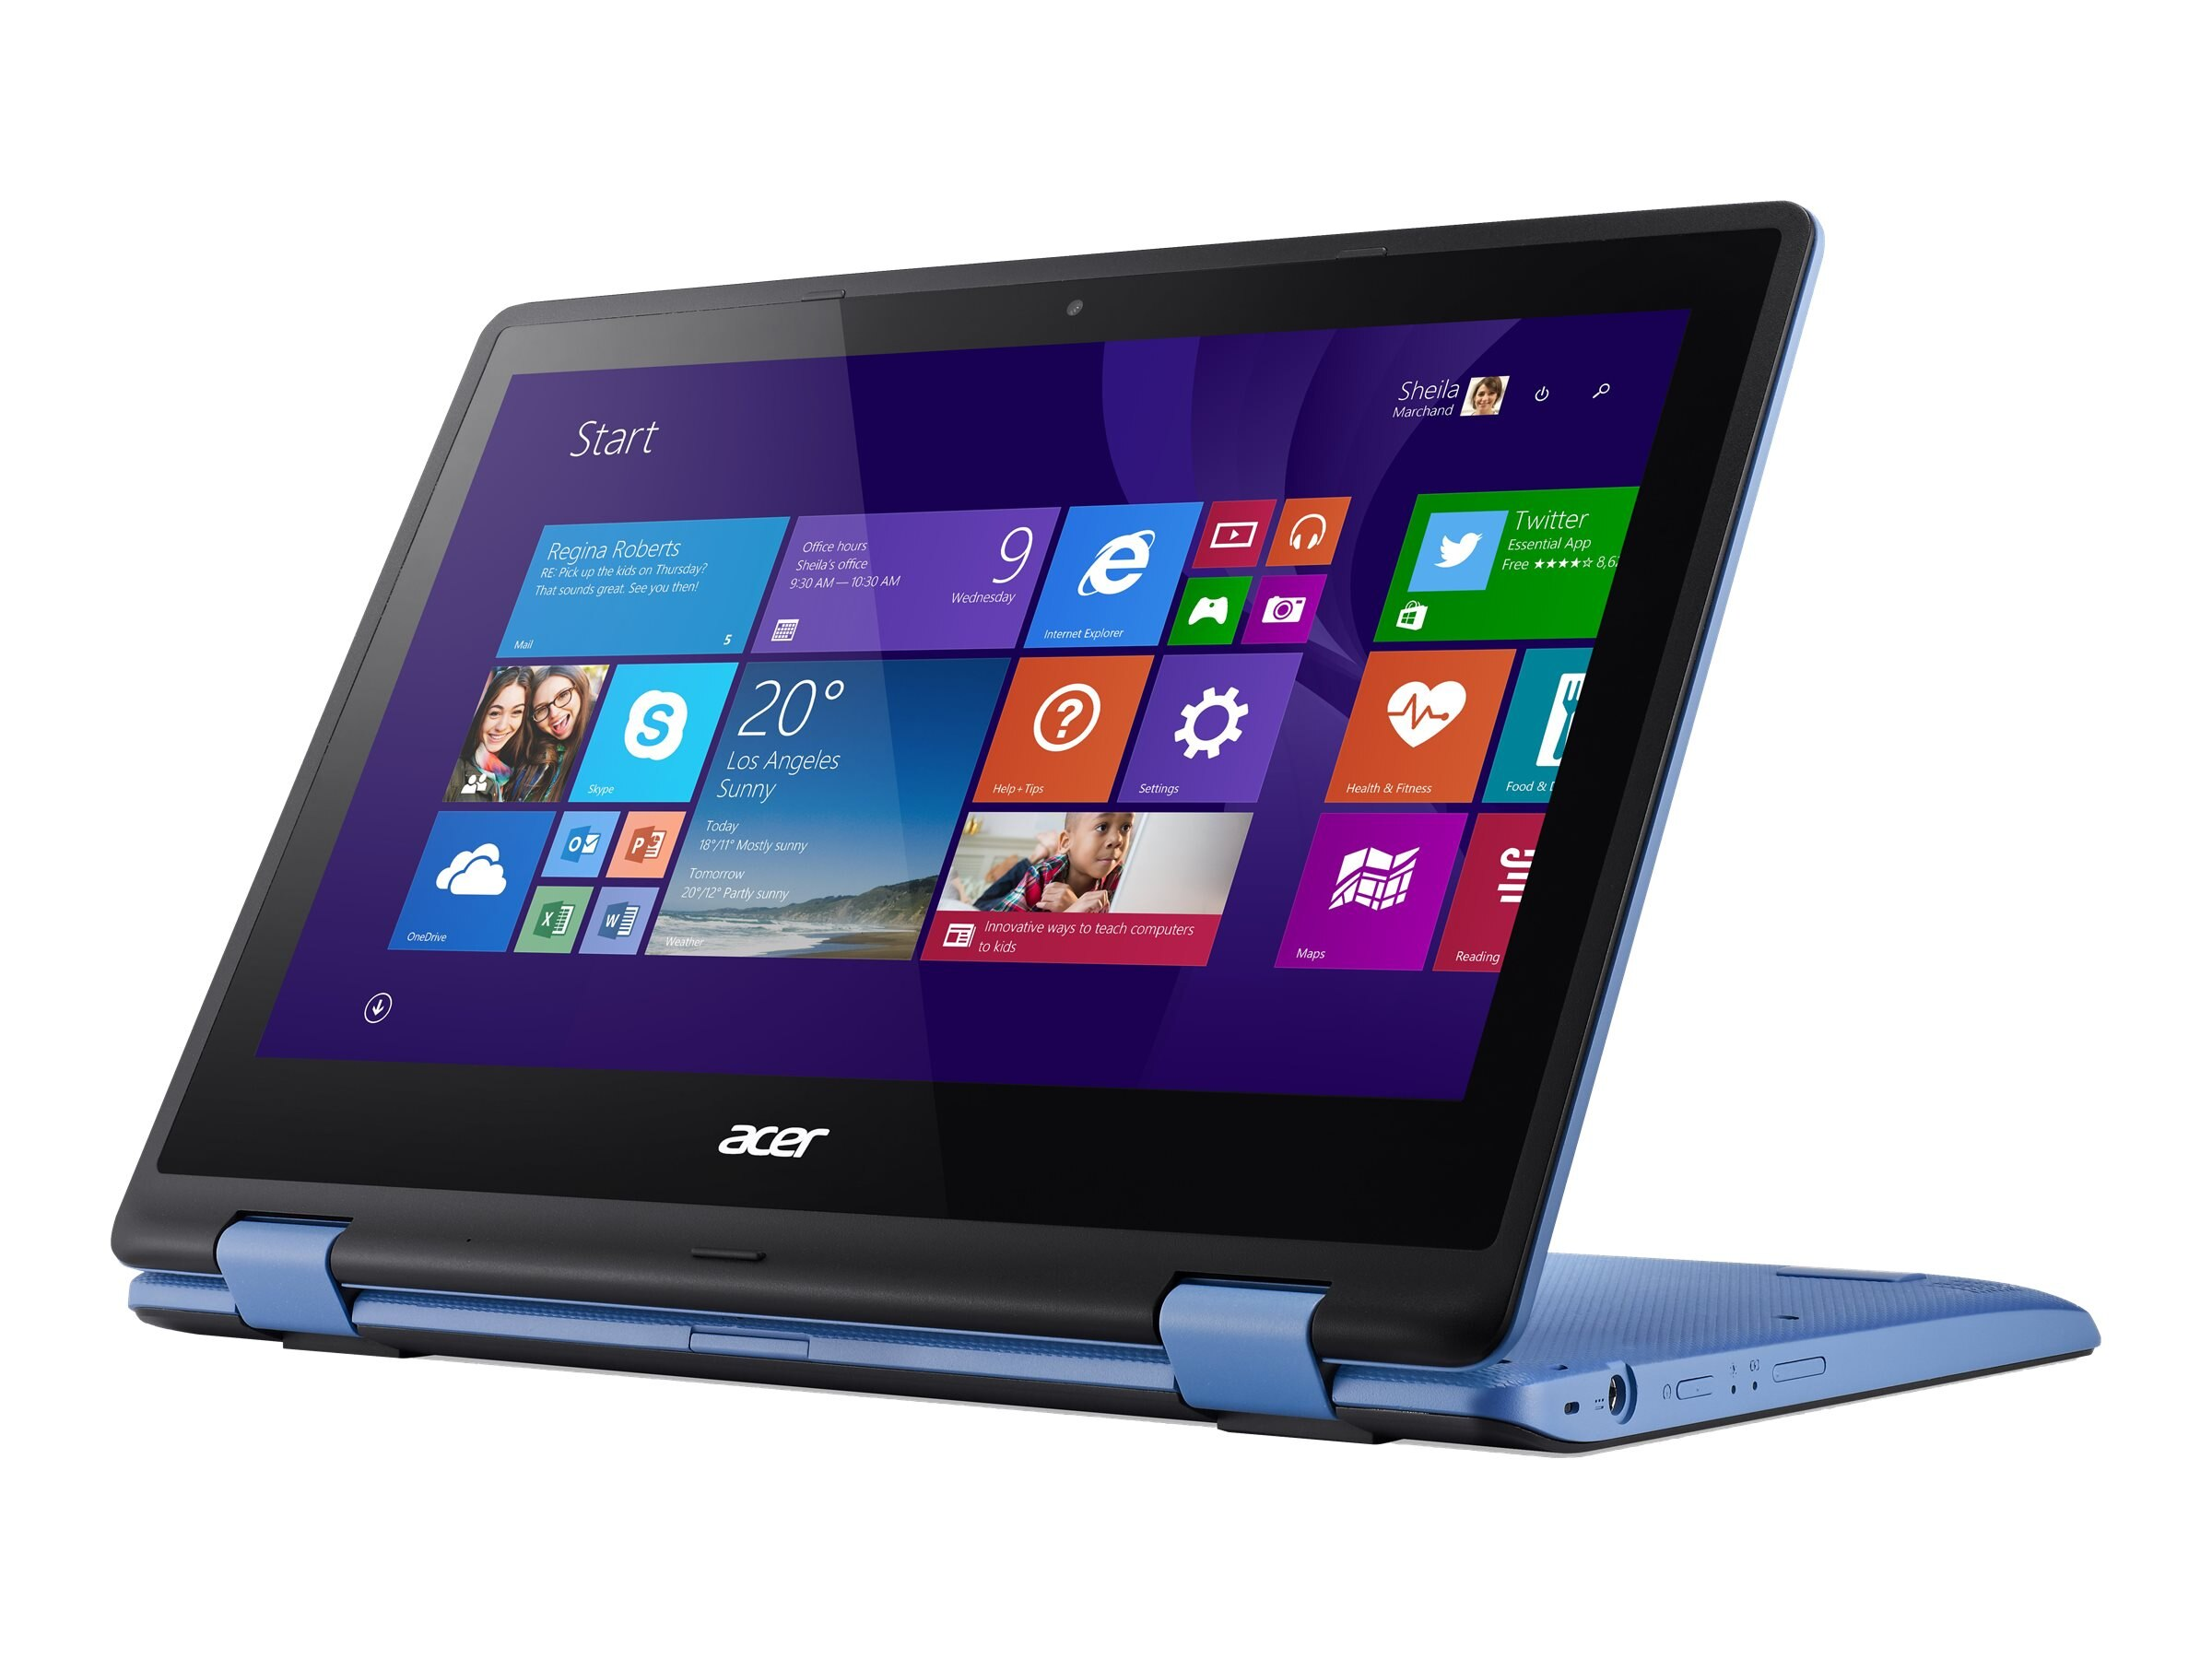 Acer Aspire R3-131T-C0B1 Celeron N3150 1.6GHz 4GB 500GB 11.6 Touch W10H64 Blue, NX.G0YAA.014, 30575403, Notebooks